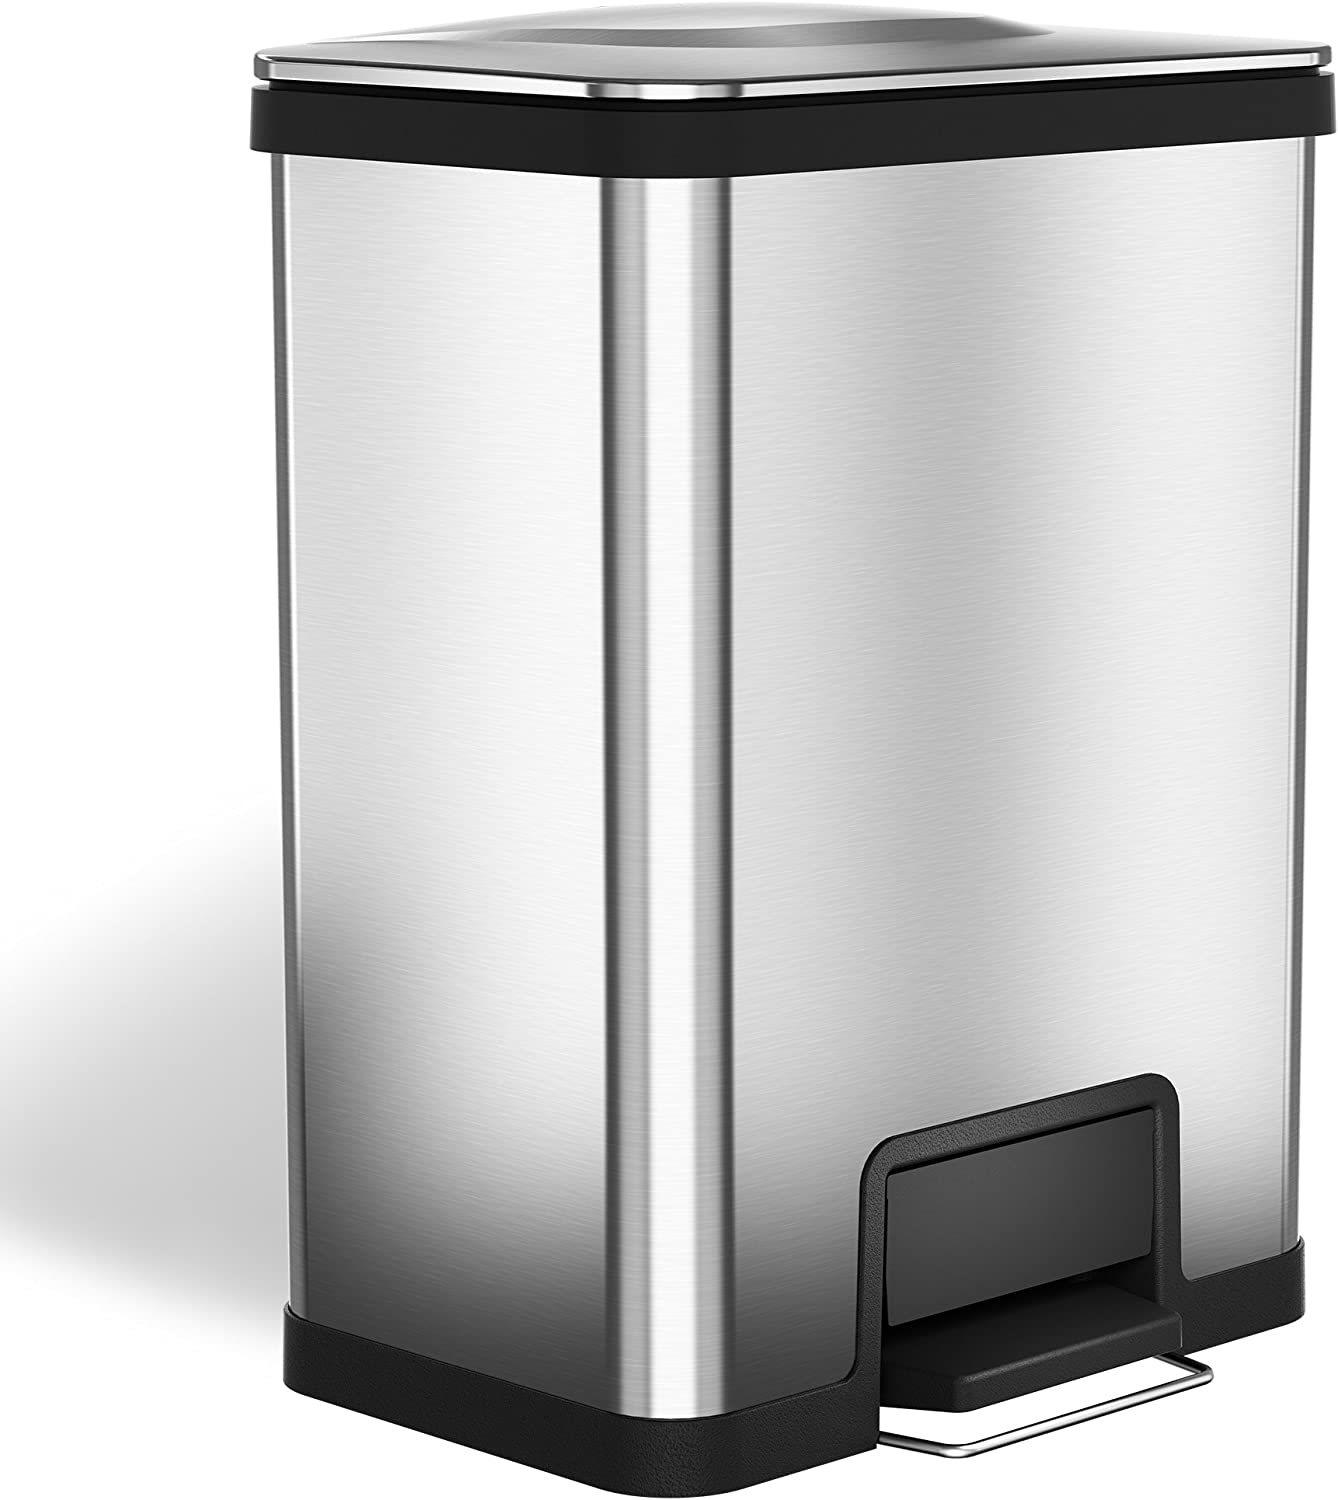 halo AirStep 13 Gallon Kitchen Trash Can – Stainless Steel Step Trash Can with Deodorizer – Replaceable Air Damper - Silent and Gentle Lid Close